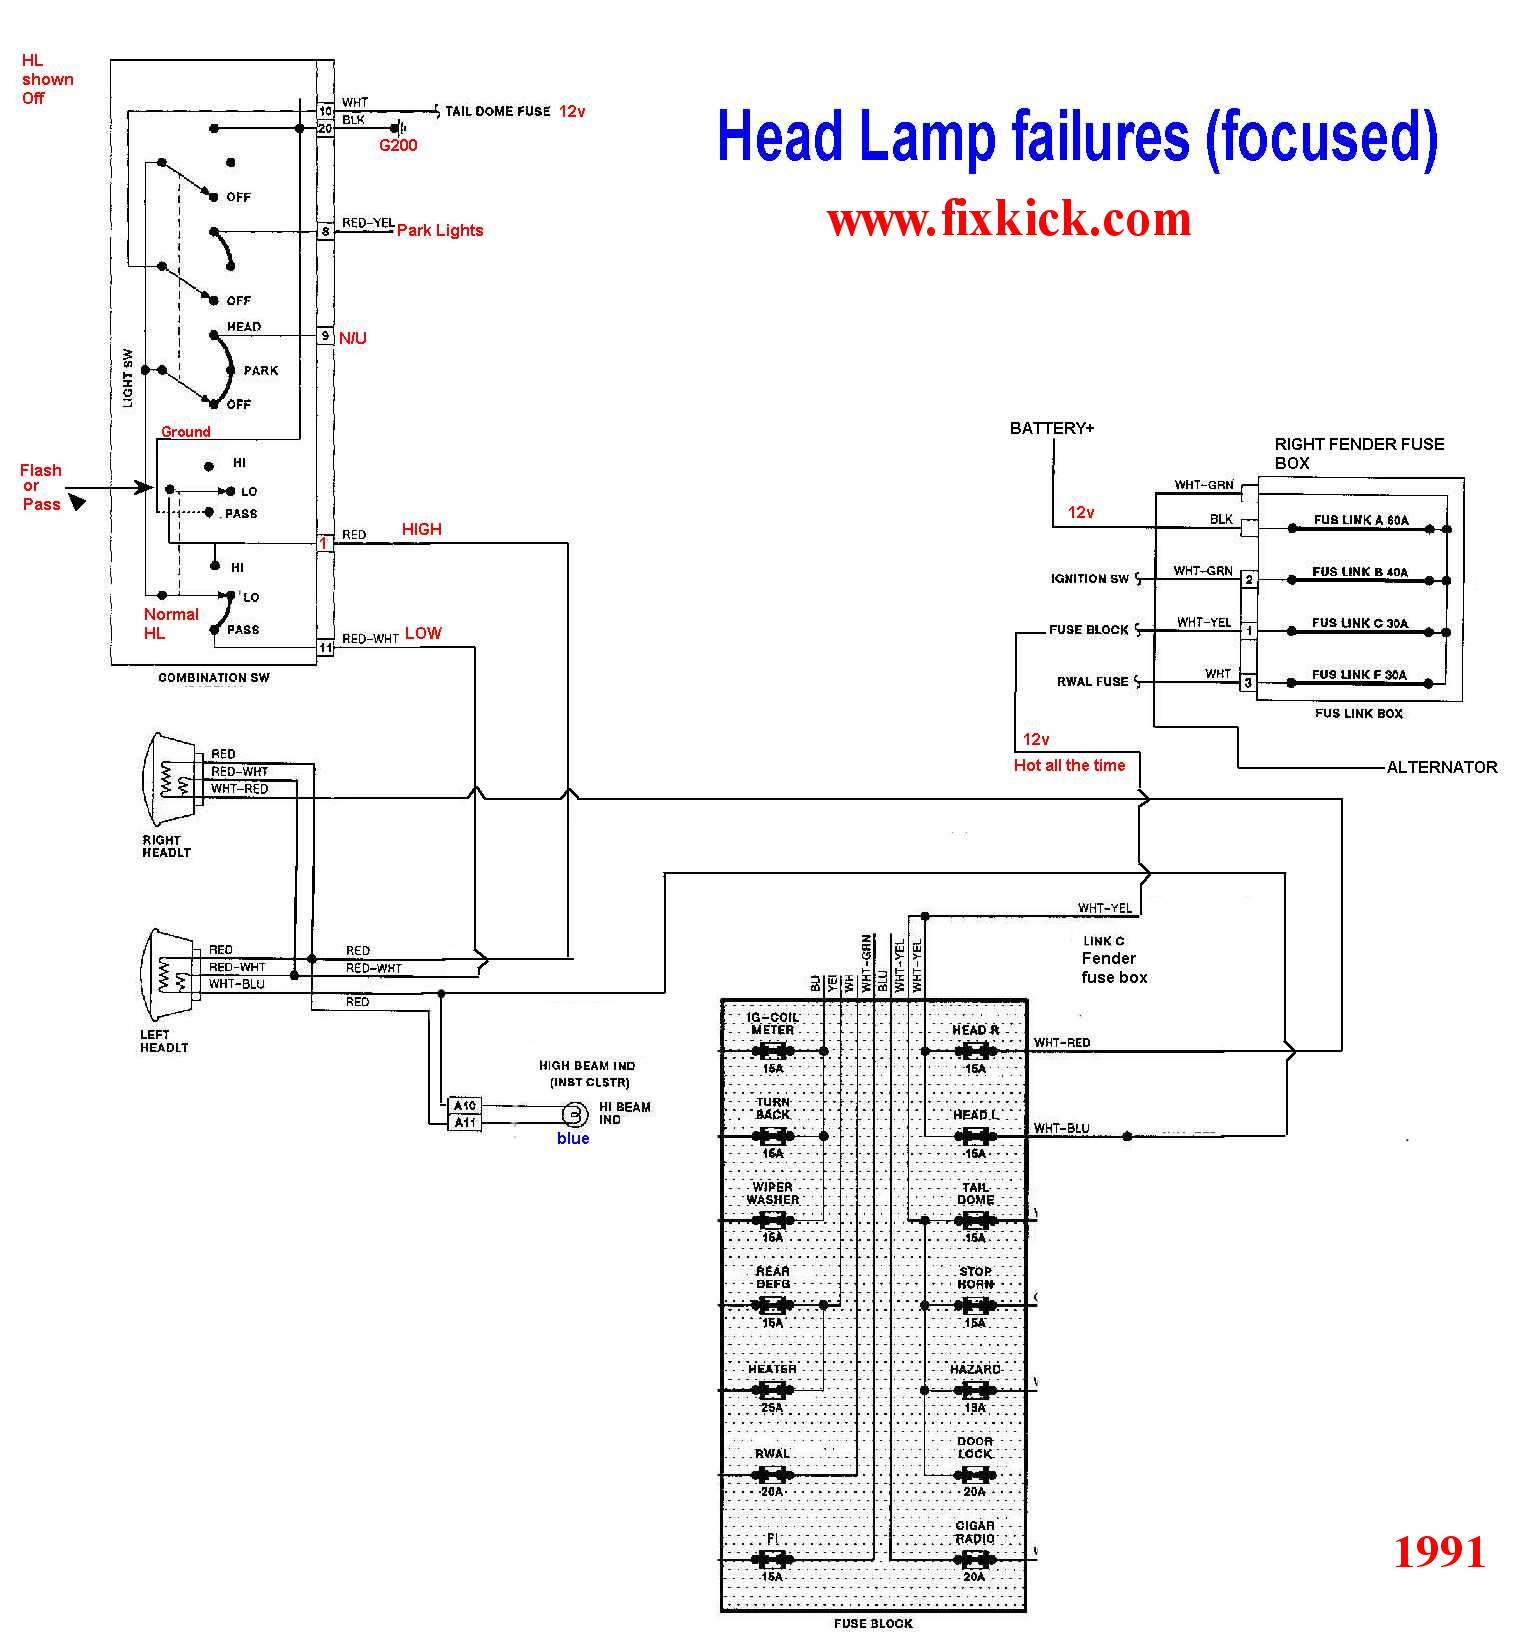 HL1A schematics to run engine 1995 geo metro fuse box diagram at bakdesigns.co